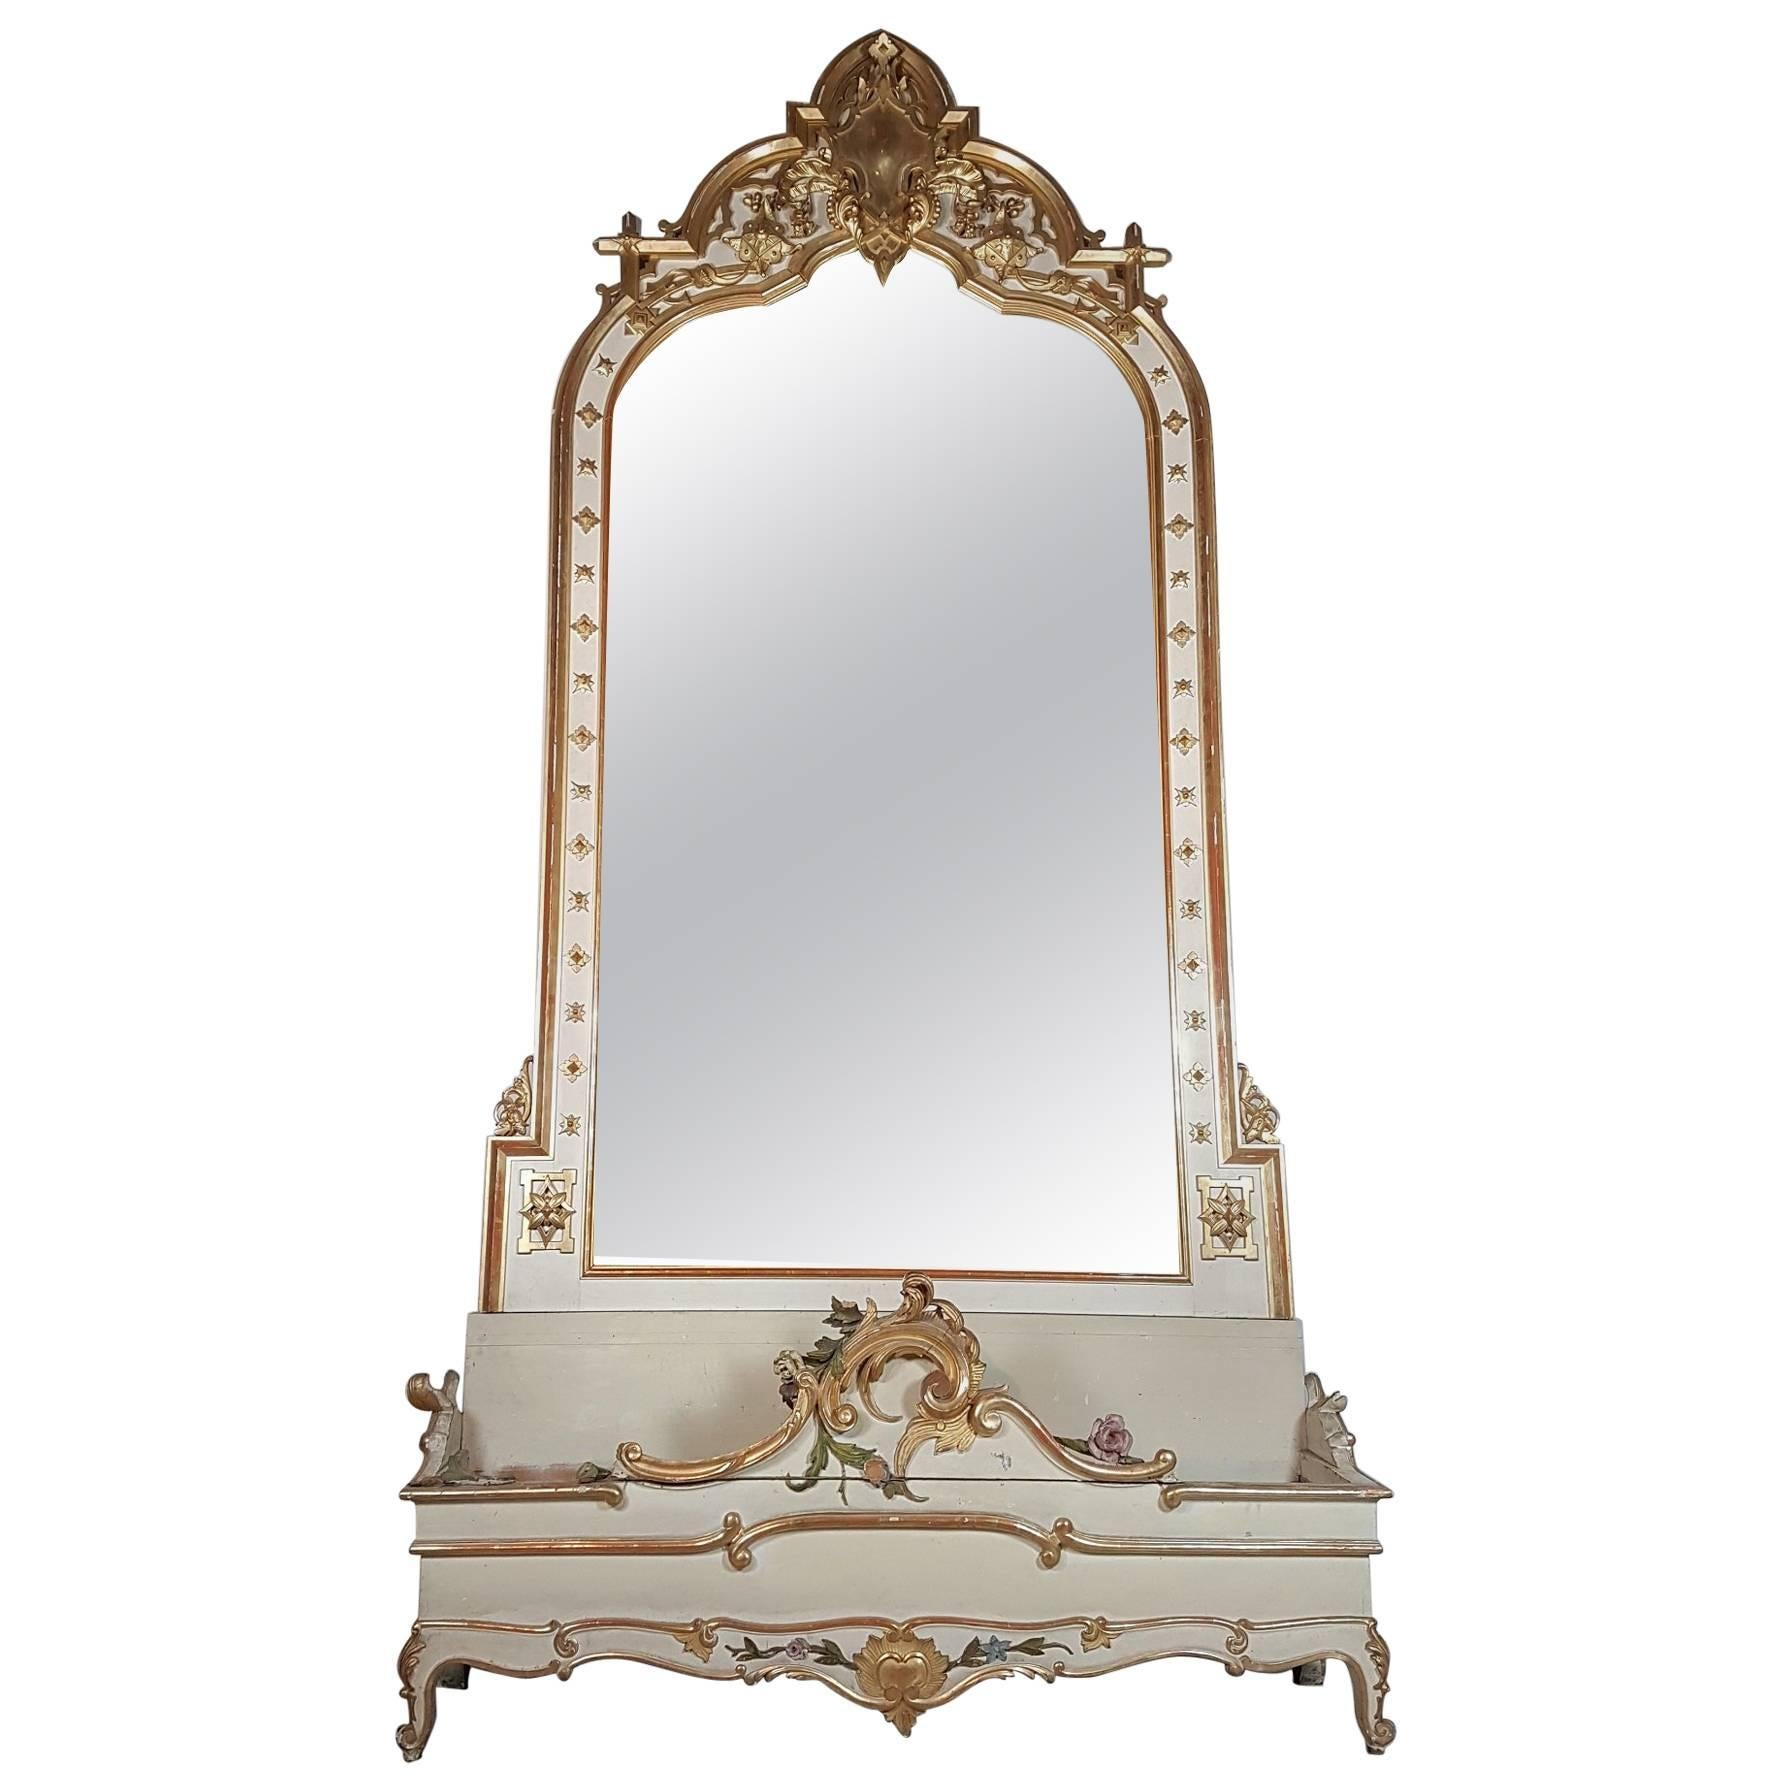 19th Century Italian Baroque Style Carved Lacquered Golden Wood Floor Mirror